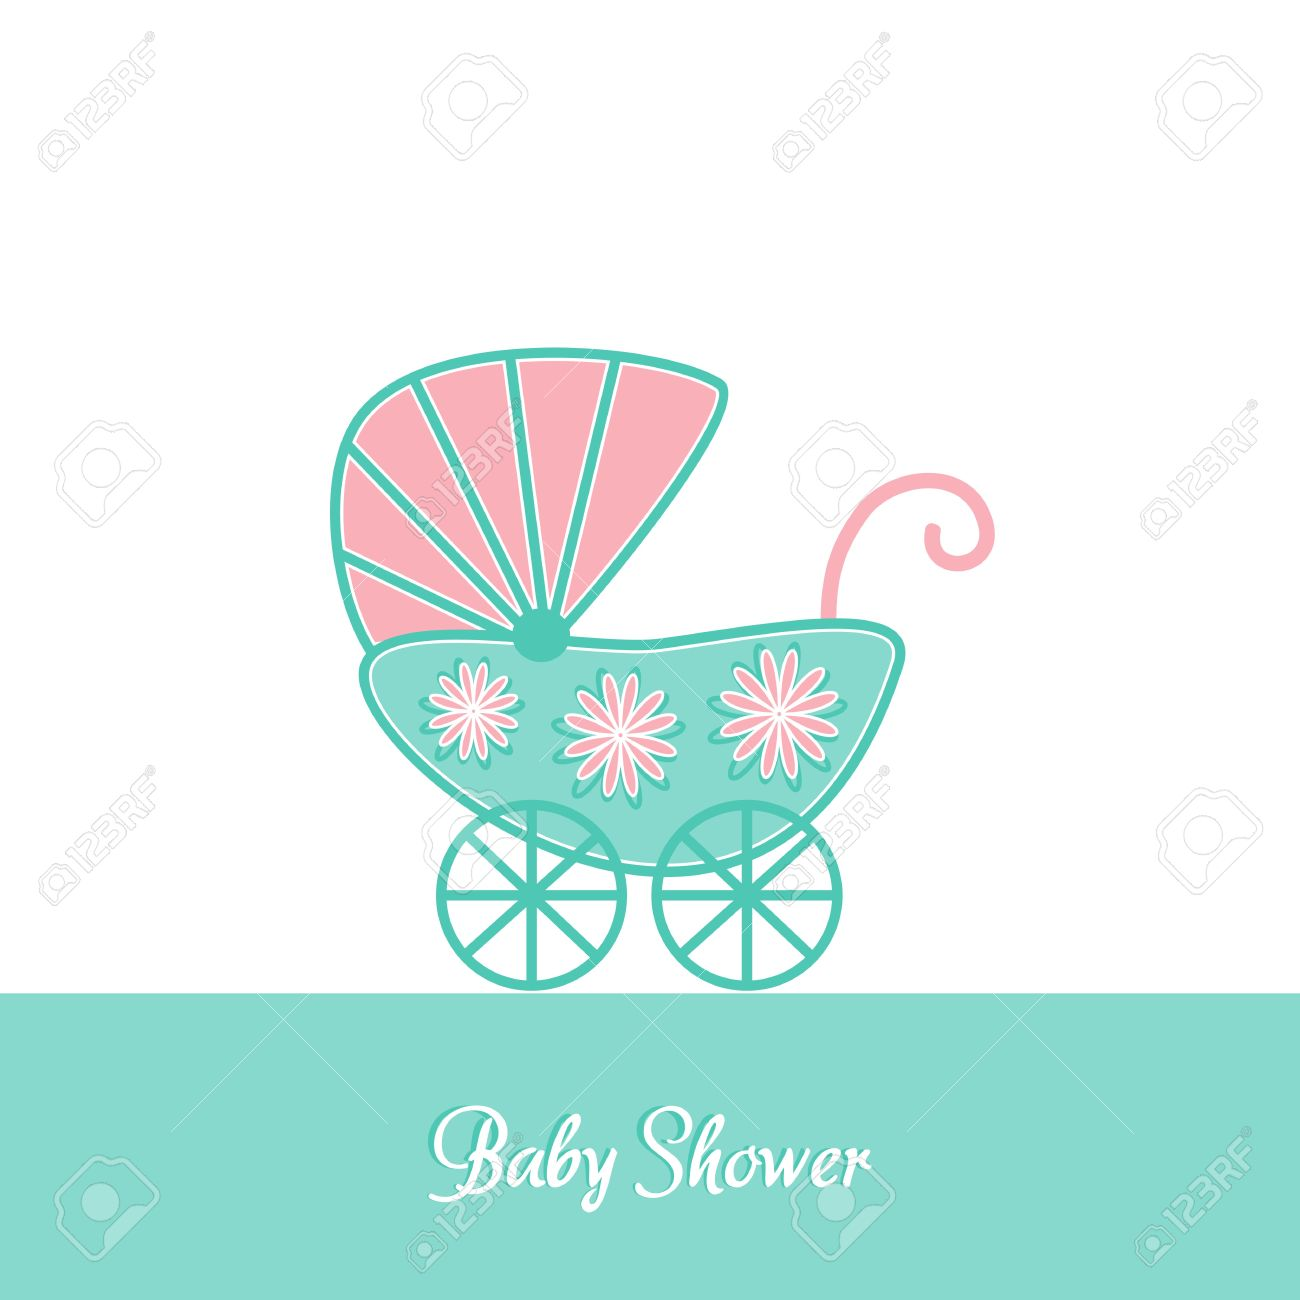 Baby Shower Card Template. baby shower vintage invitation card ...